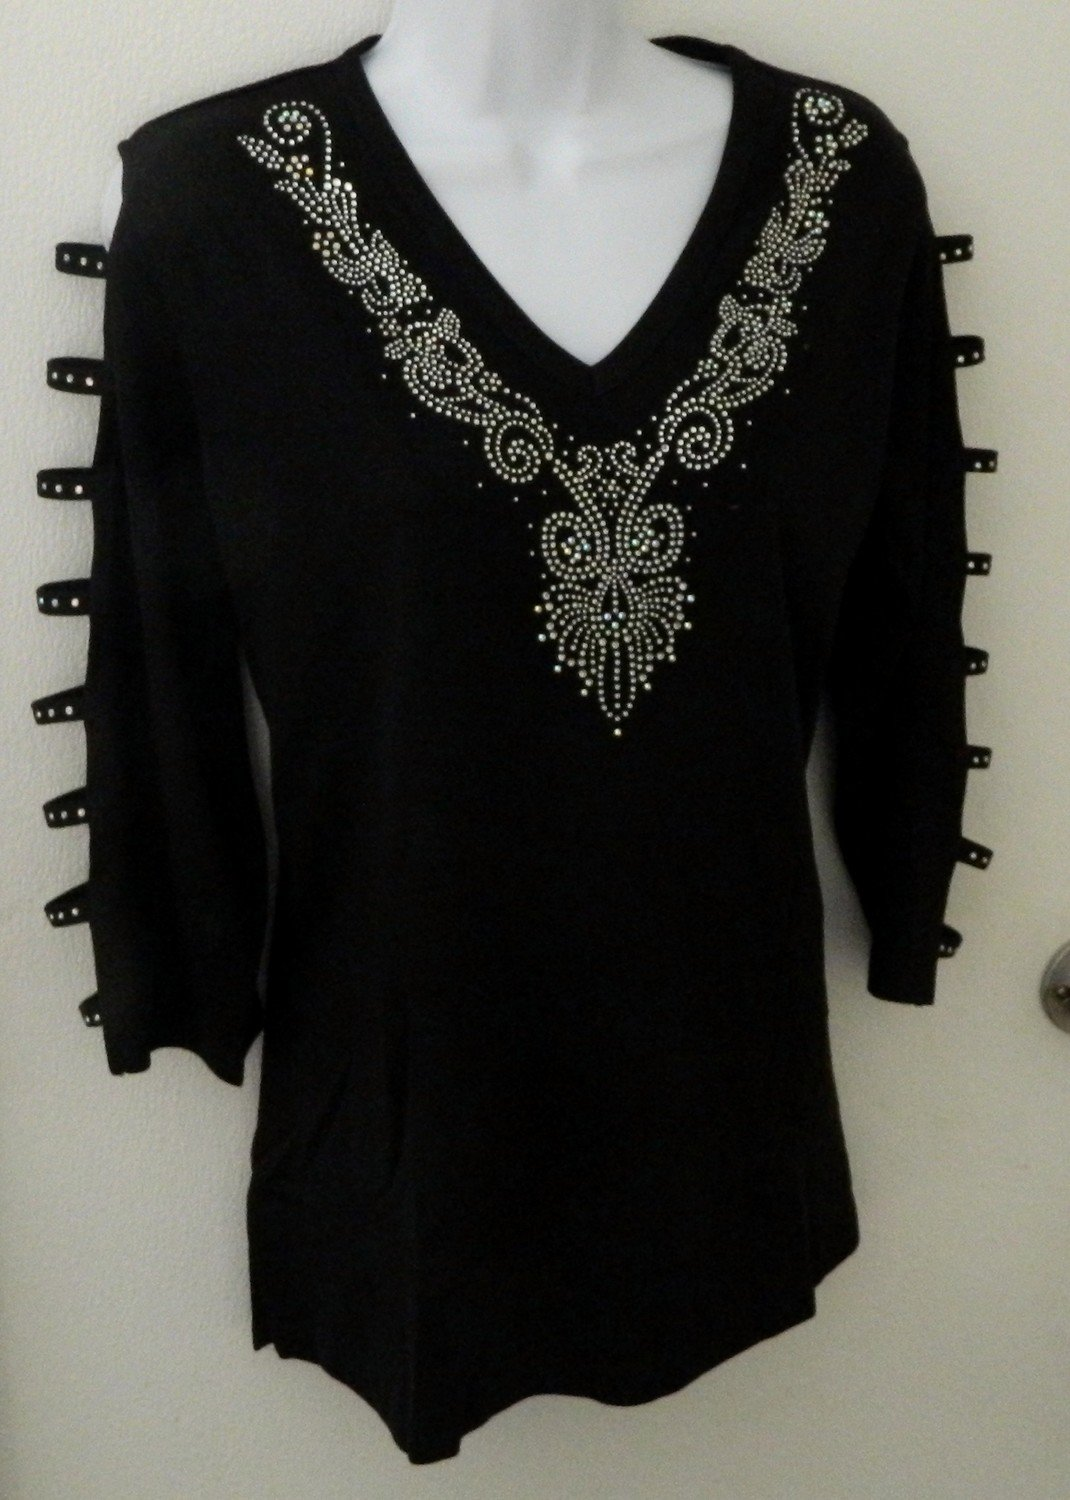 VINTAGE Design AB/Clear VNeckline + Embellished Ladder Sleeve